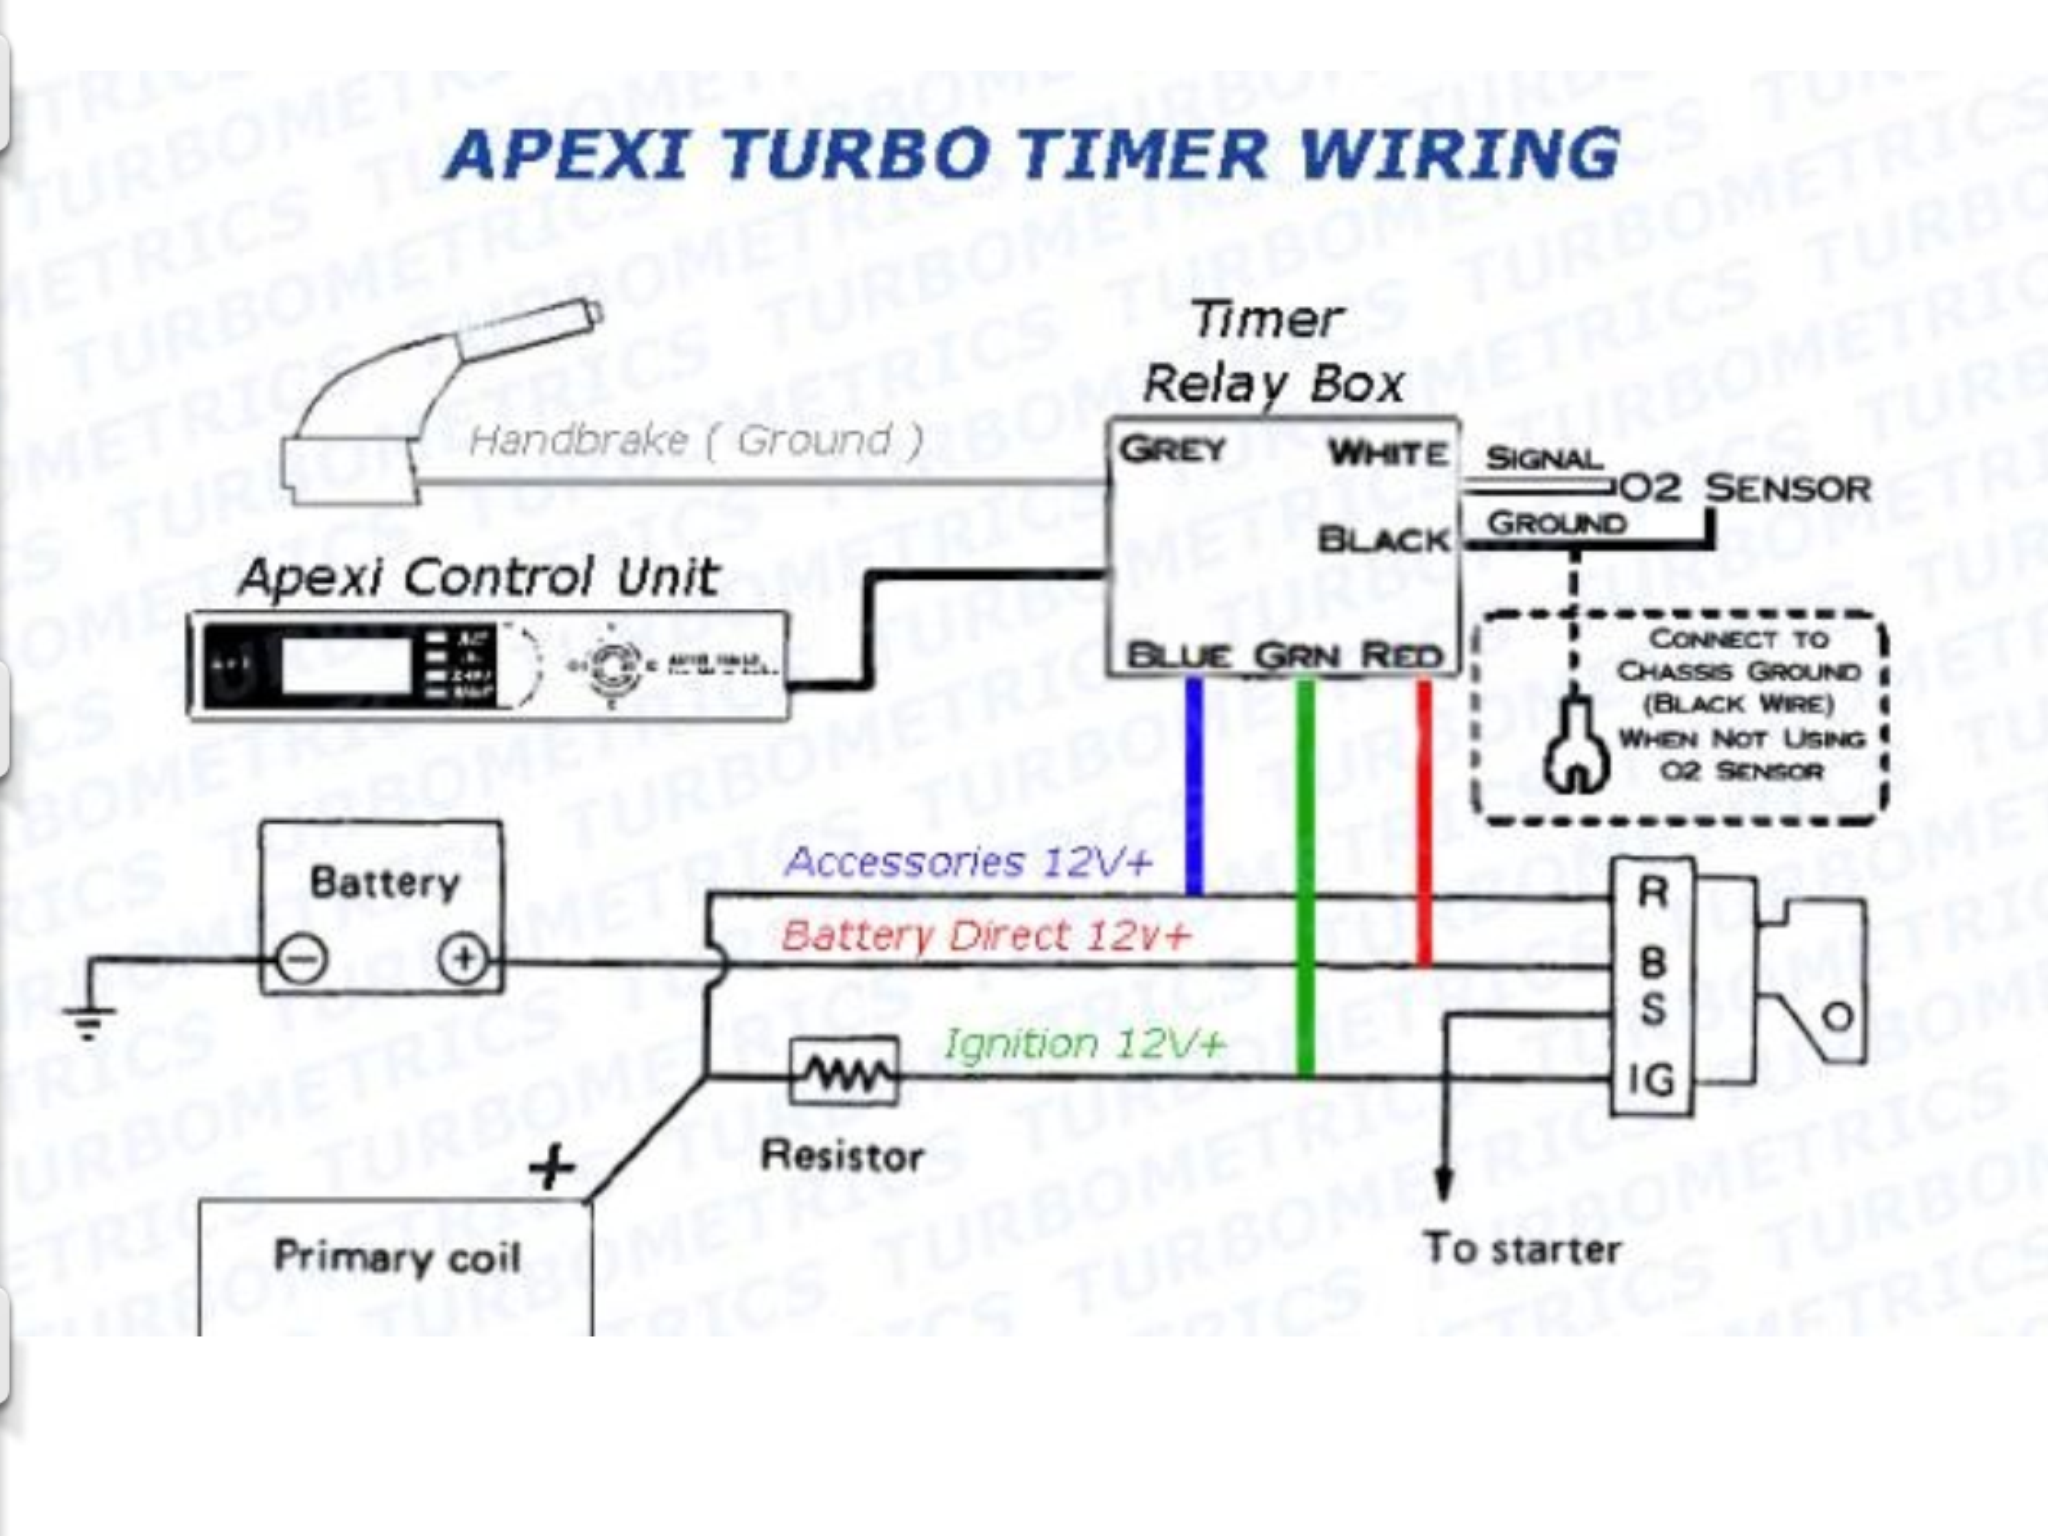 Apexi Turbo Timer Wiring Diagram And Schematics Circuits 300zx Hks List Of Schematic Circuit G Reddy